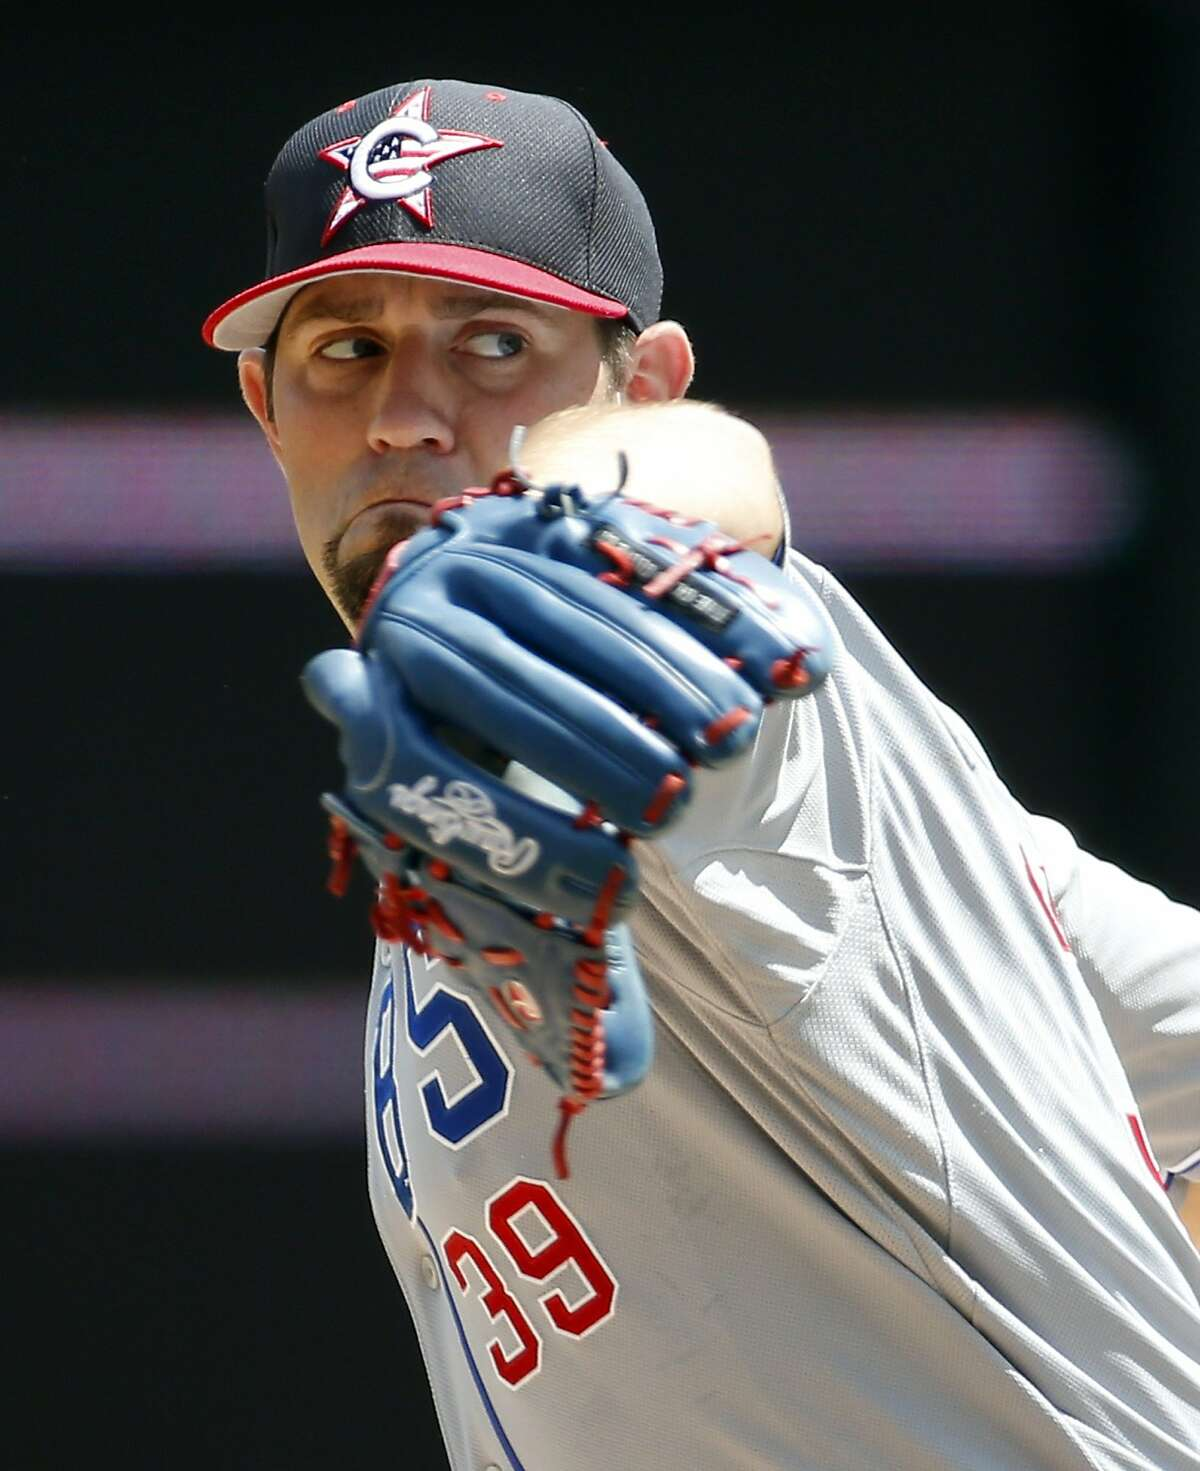 Chicago Cubs starting pitcher Jason Hammel throws during a baseball game against the Washington Nationals at Nationals Park, Friday, July 4, 2014, in Washington. (AP Photo/Alex Brandon)